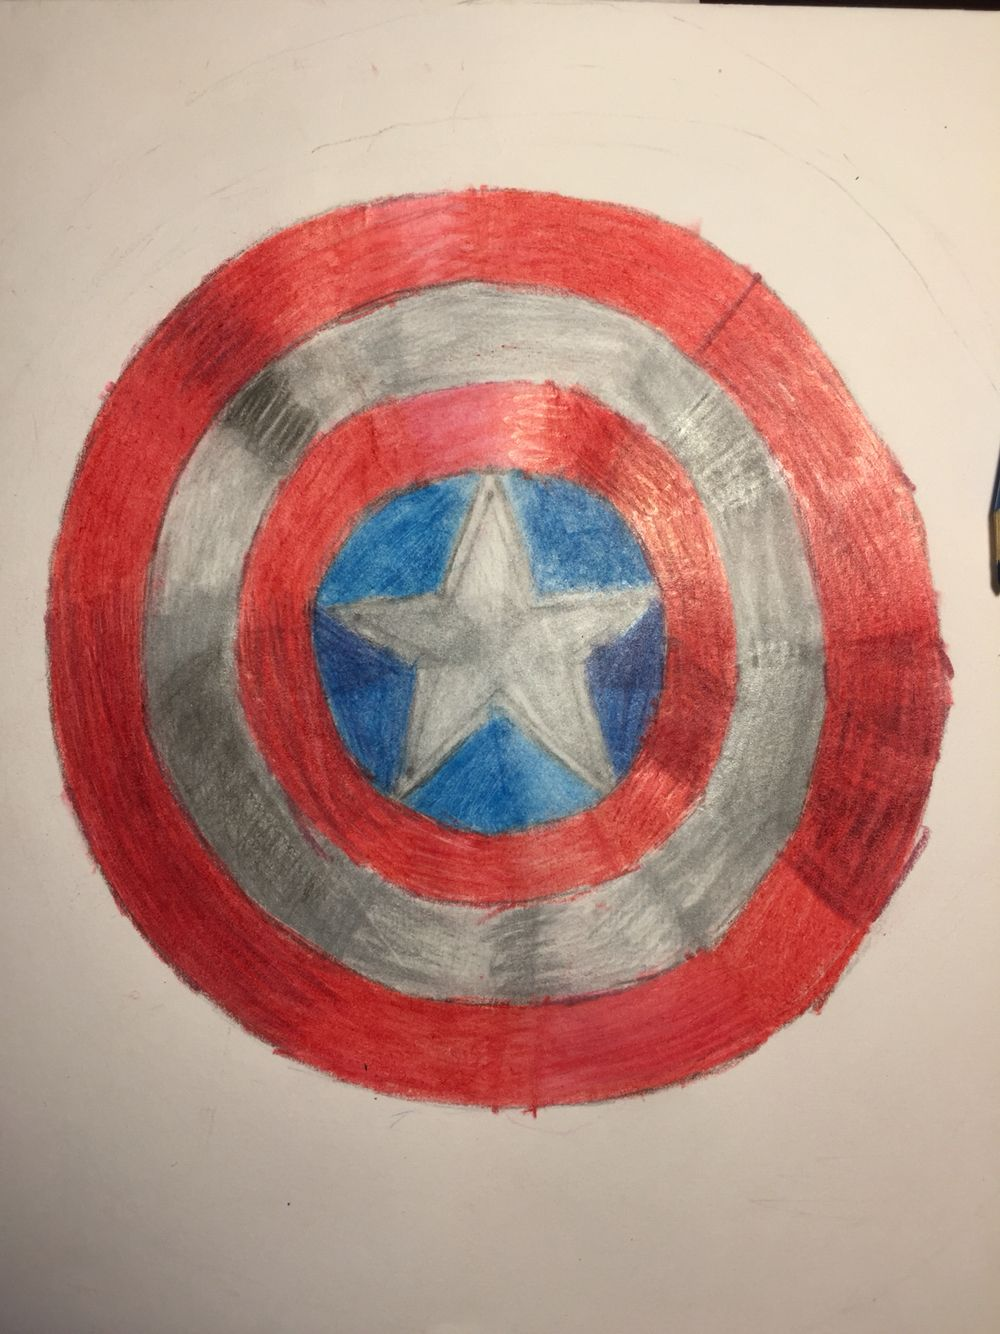 Captain America! More Marvel soon to come!